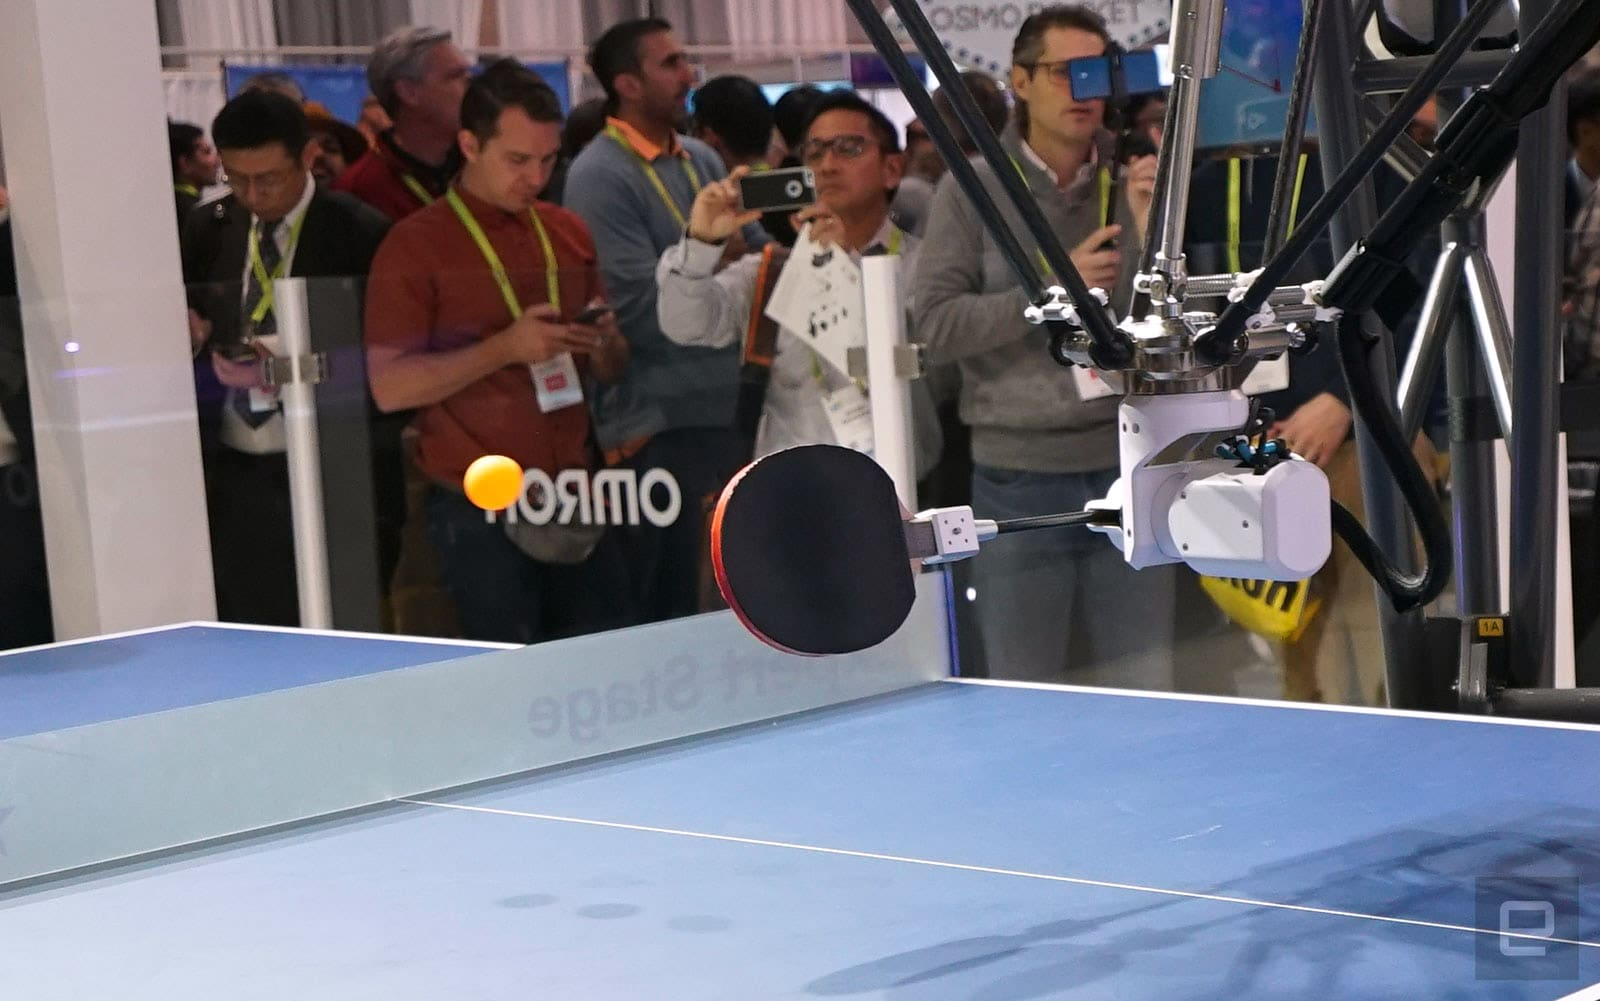 OMRON Forpheus ping pong robot at CES 2019